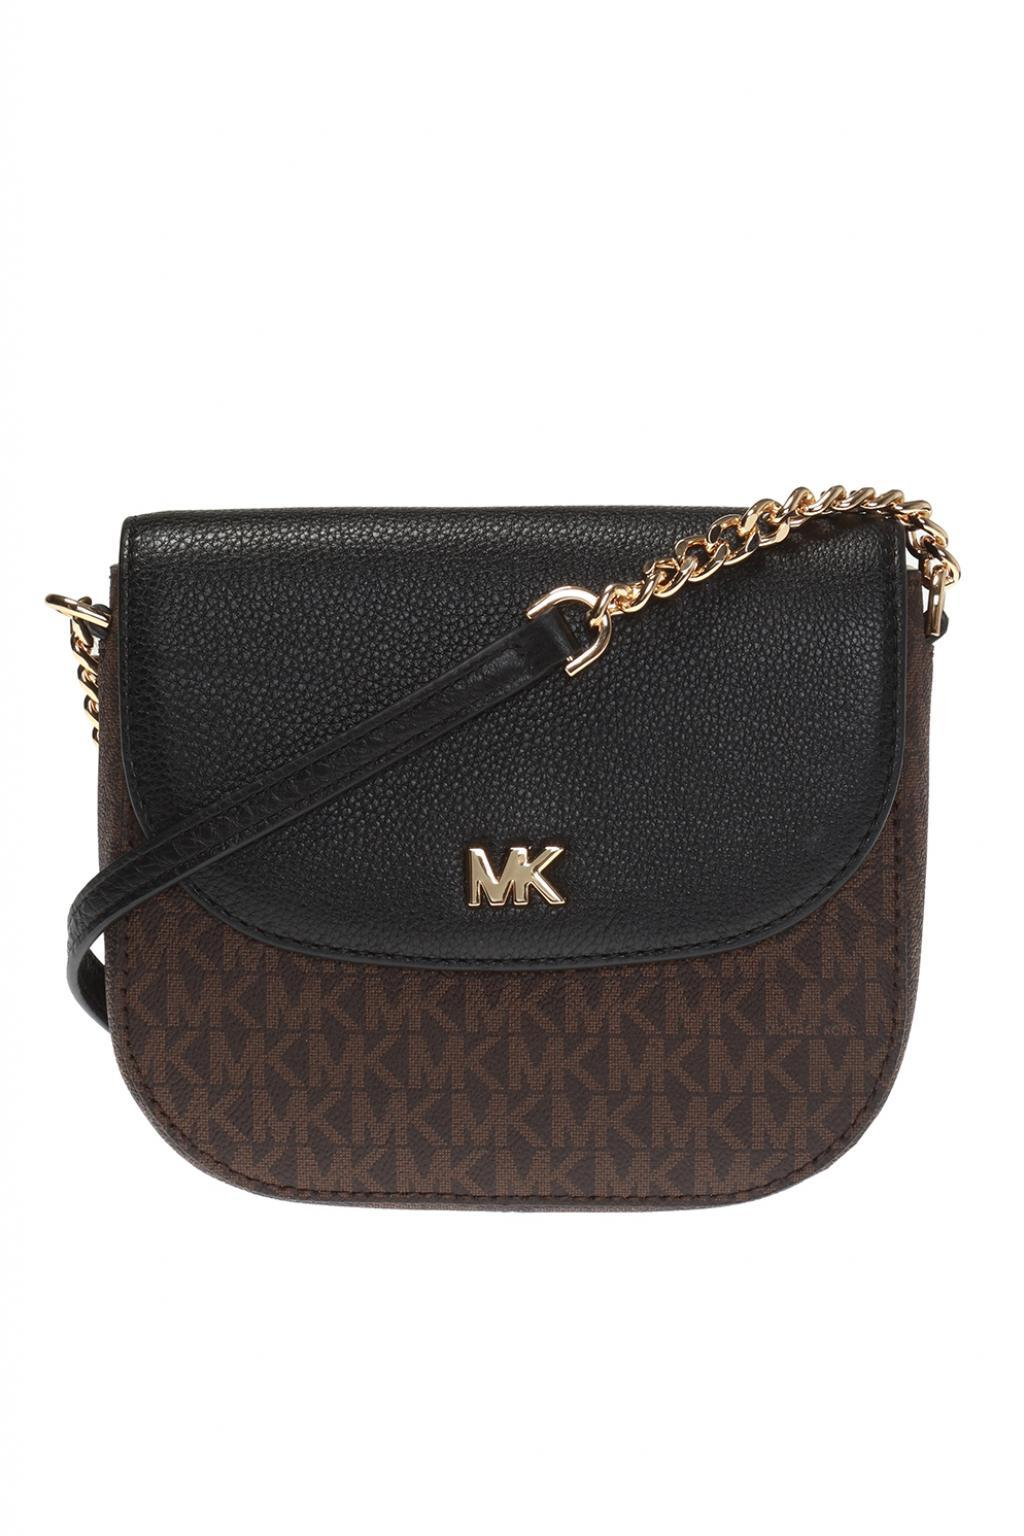 michael kors shoulder bag with logo pattern lyst rh lyst co uk